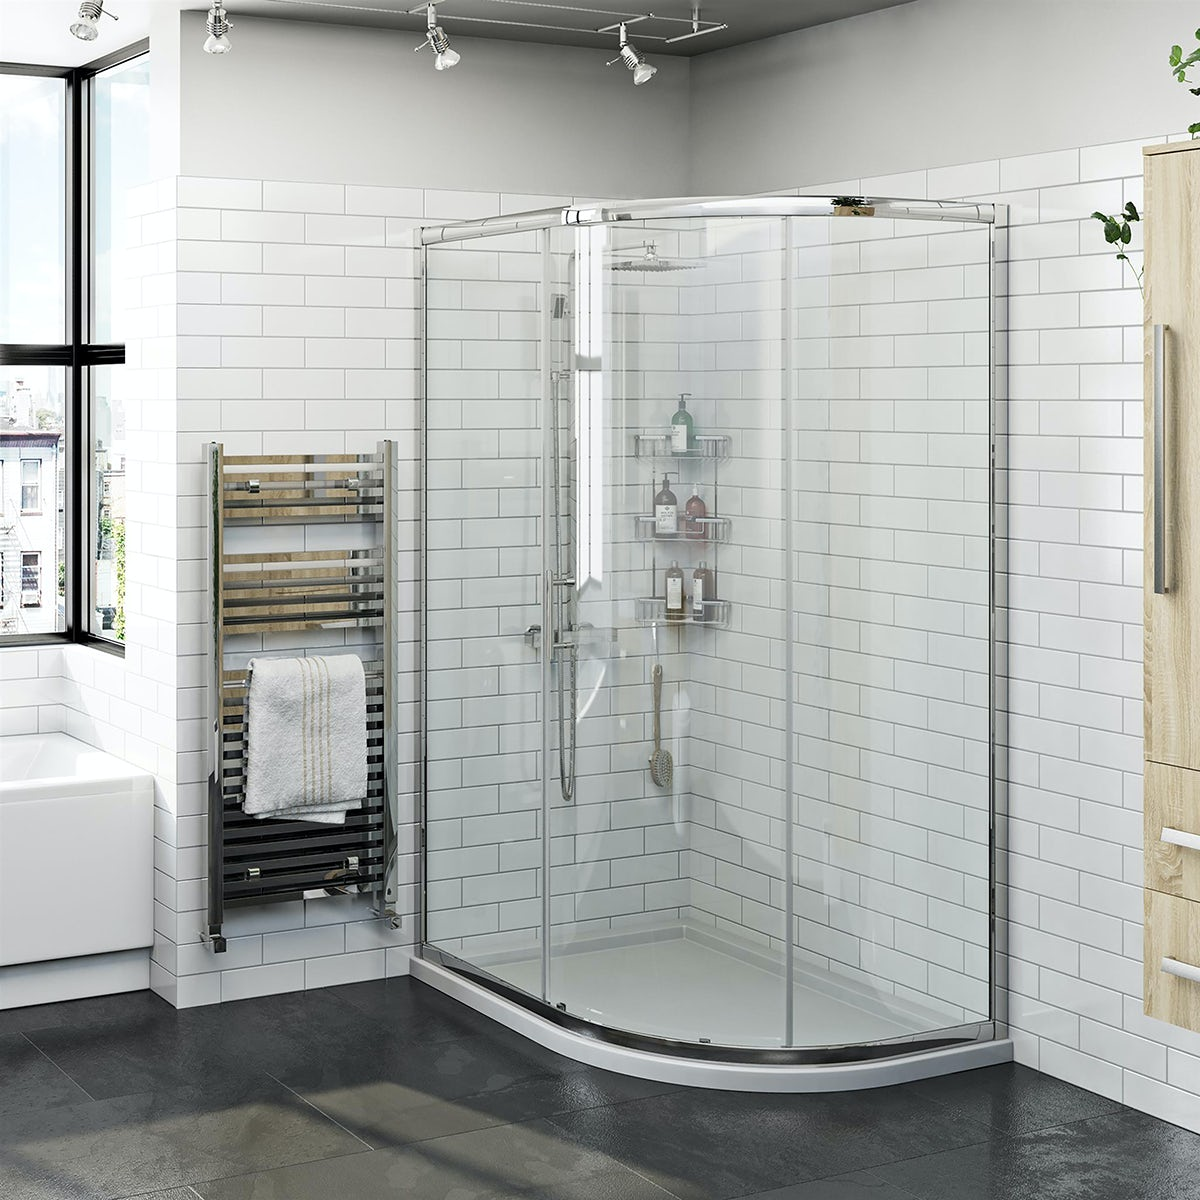 Orchard 6mm one door offset quadrant shower enclosure